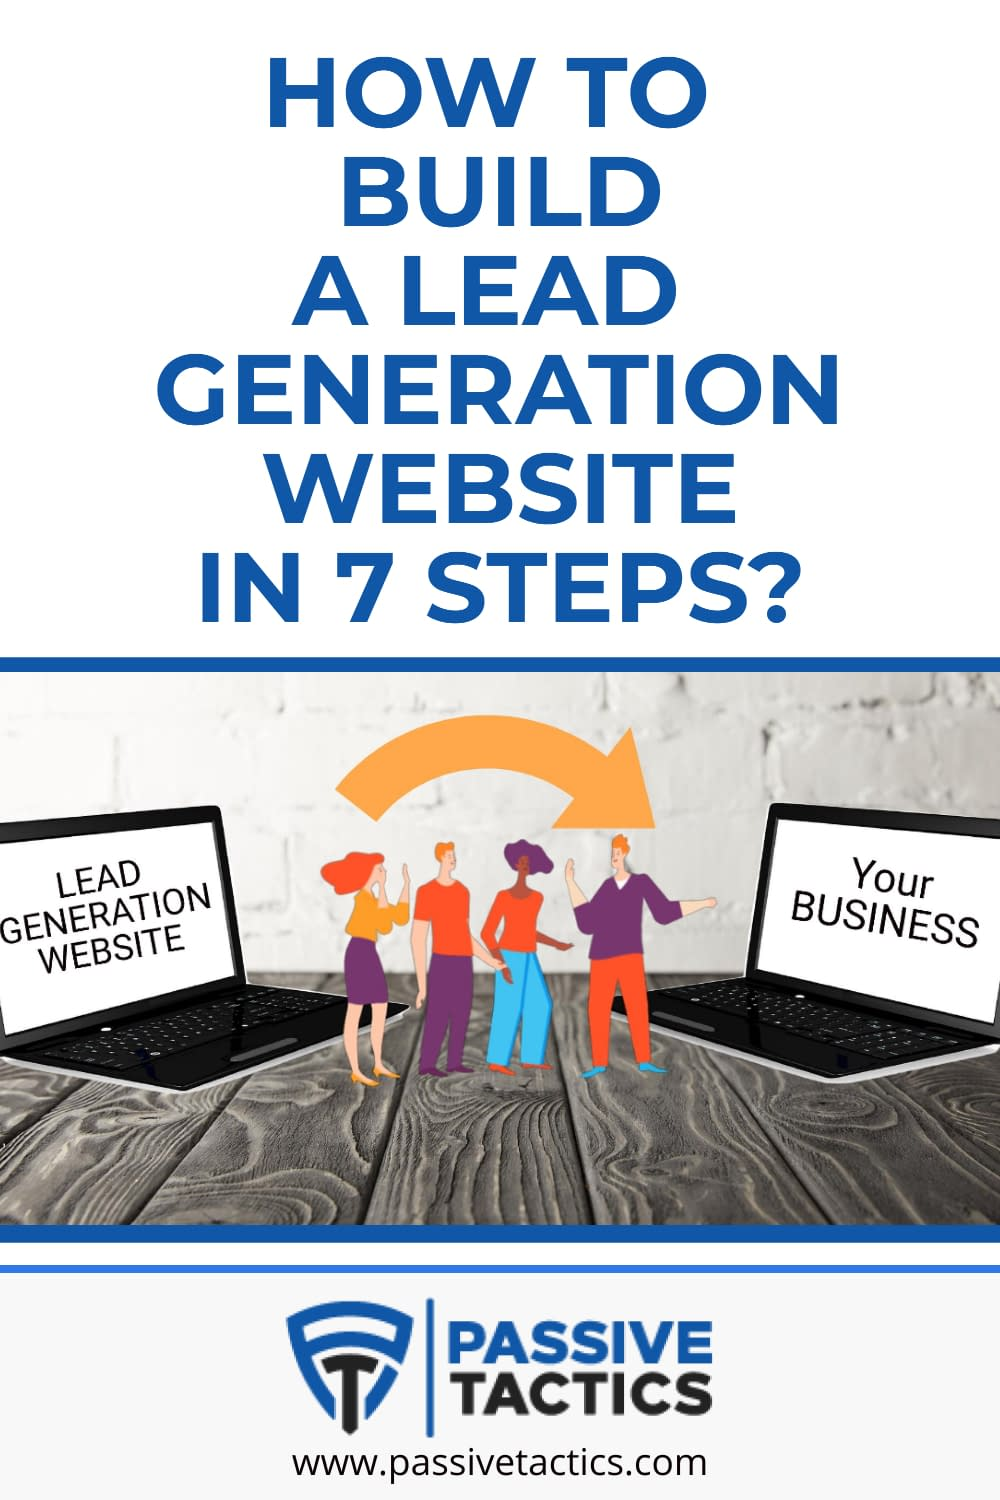 How To Build A Lead Generation Website In 7 Steps?